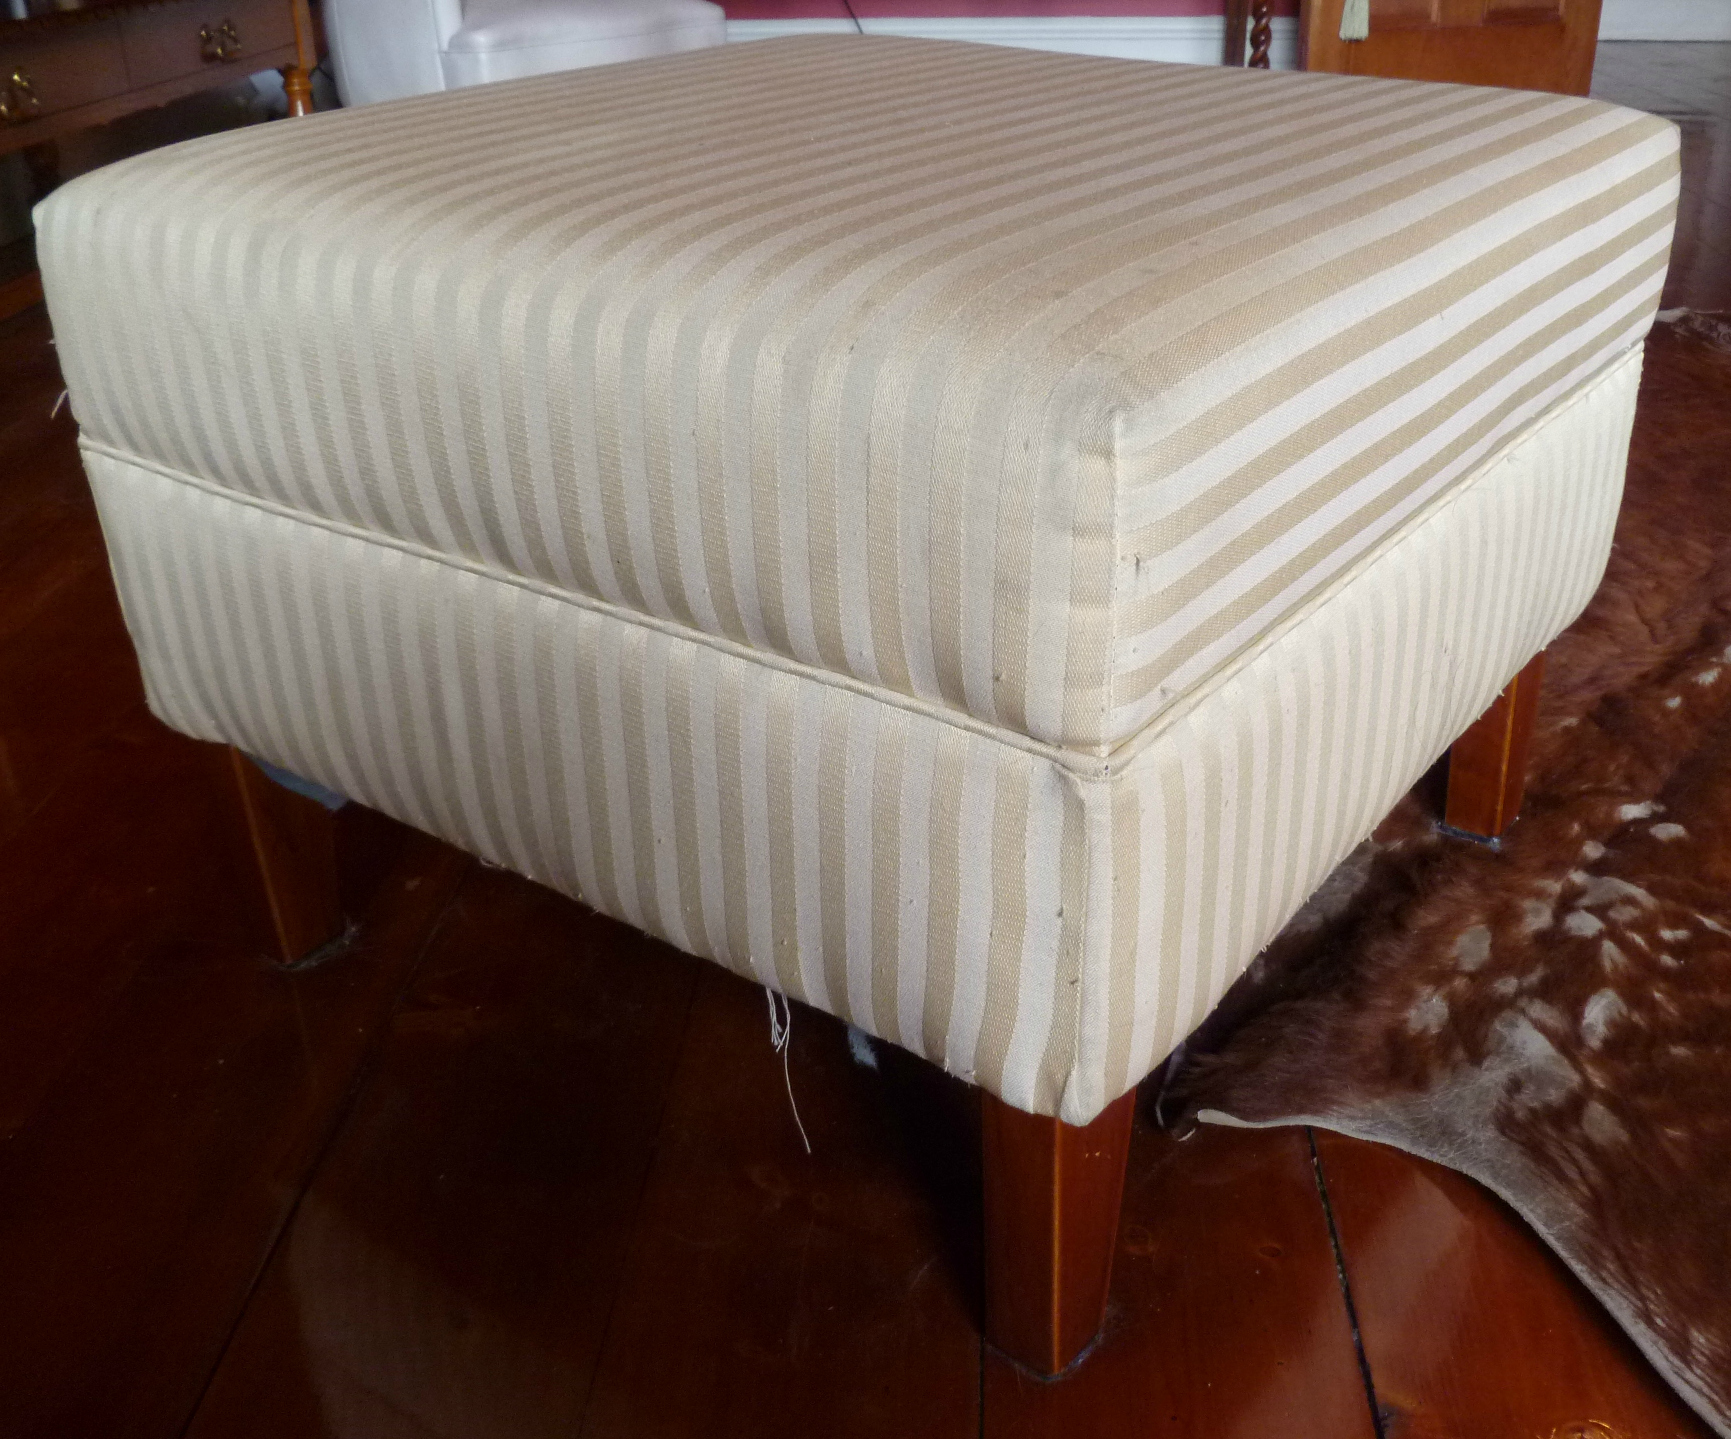 and coffee home table custom ottoman fireplace ottomans hide cowhide square hotel brand luxury furniture decor stools of mondo round stool maker pou cow for chairs